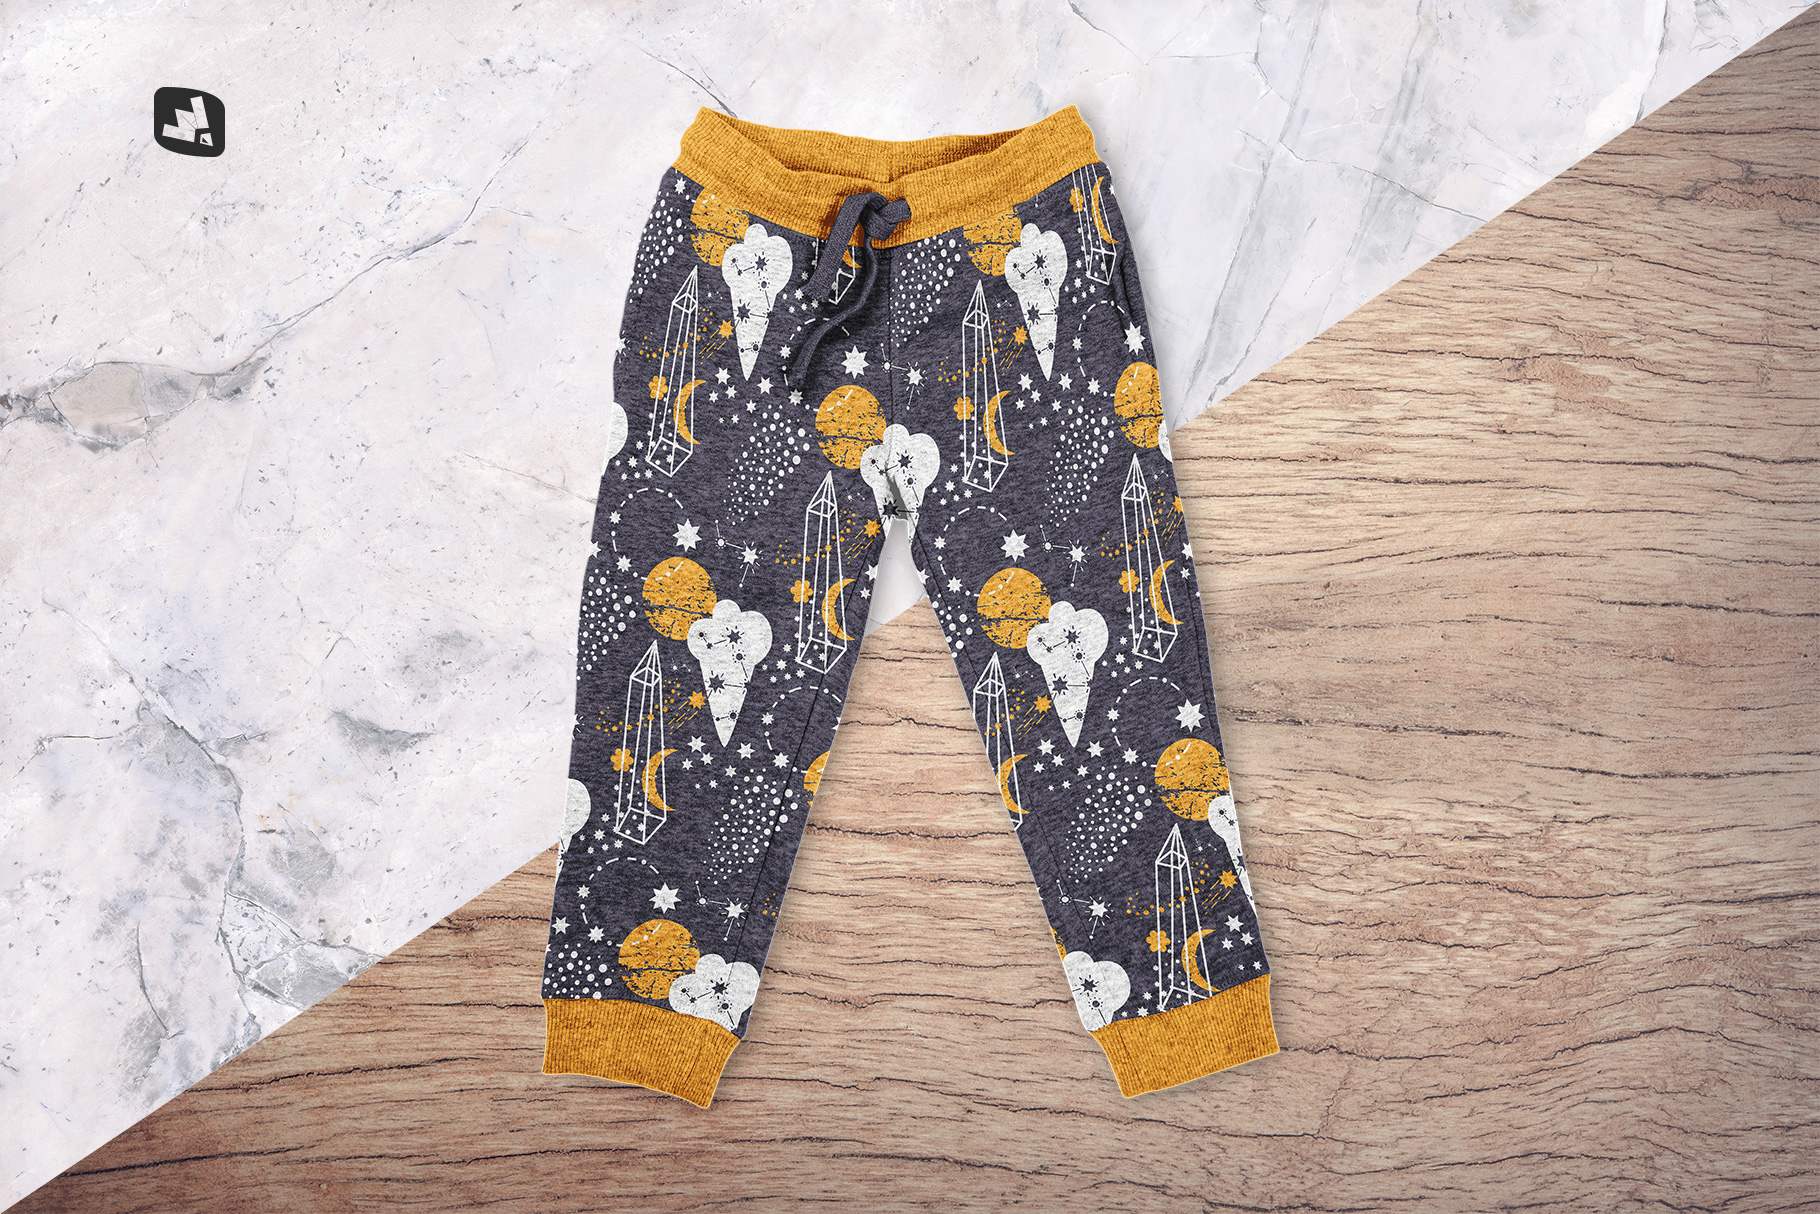 background options of the top view infant track pants mockup